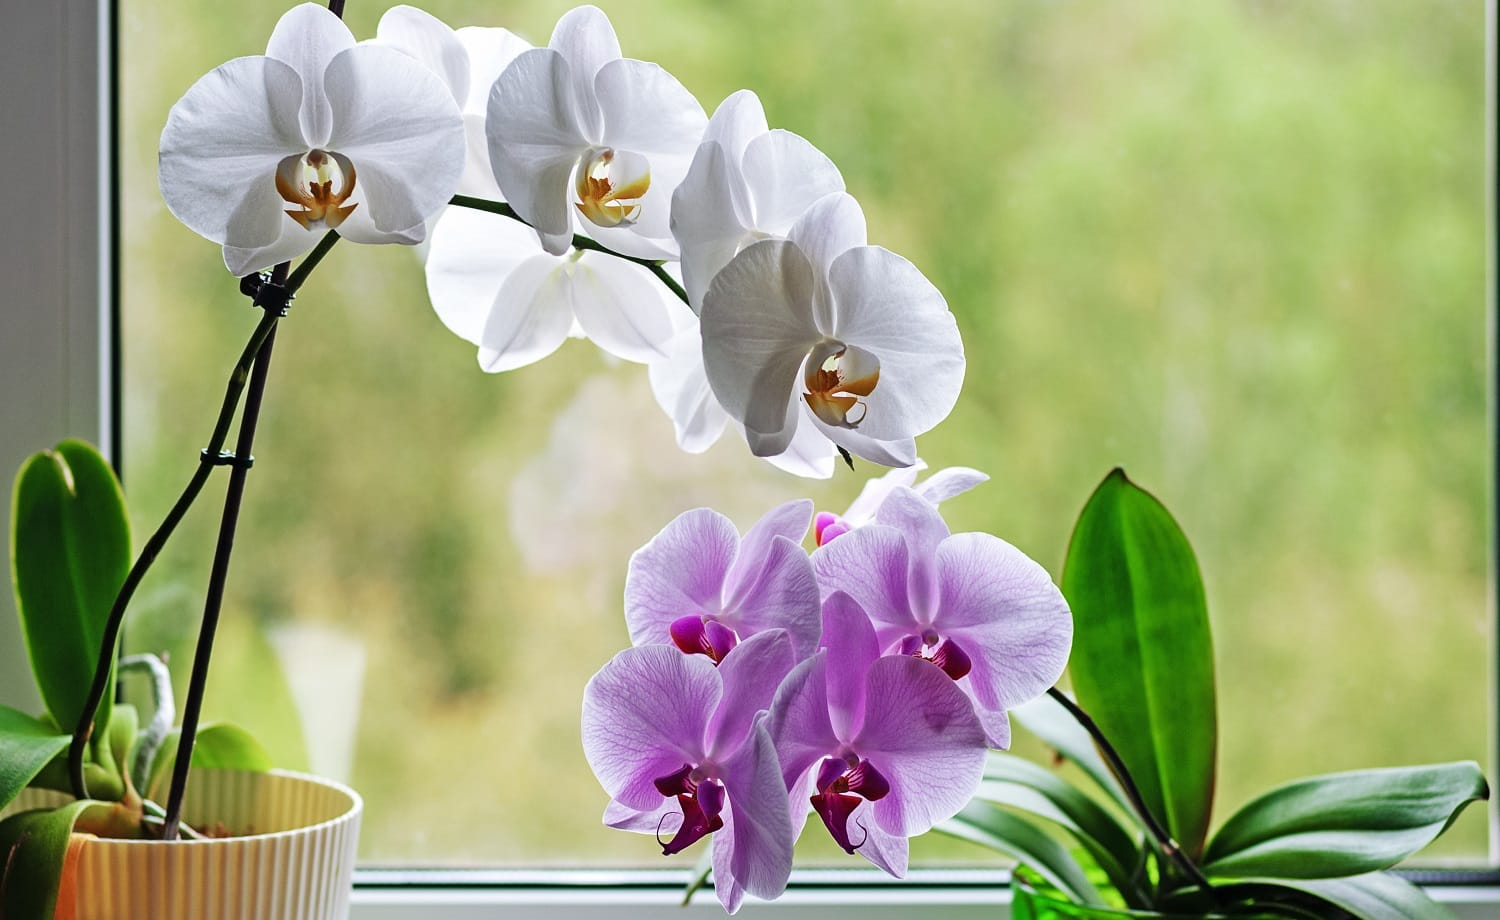 orchids blooming in flower pots on window sill